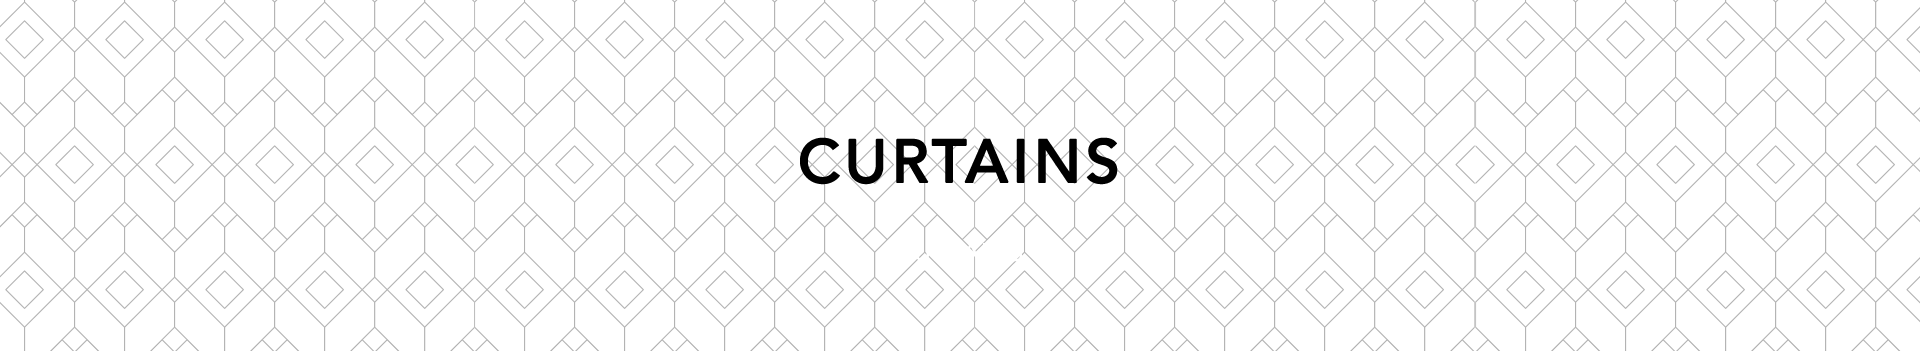 osaka-curtains